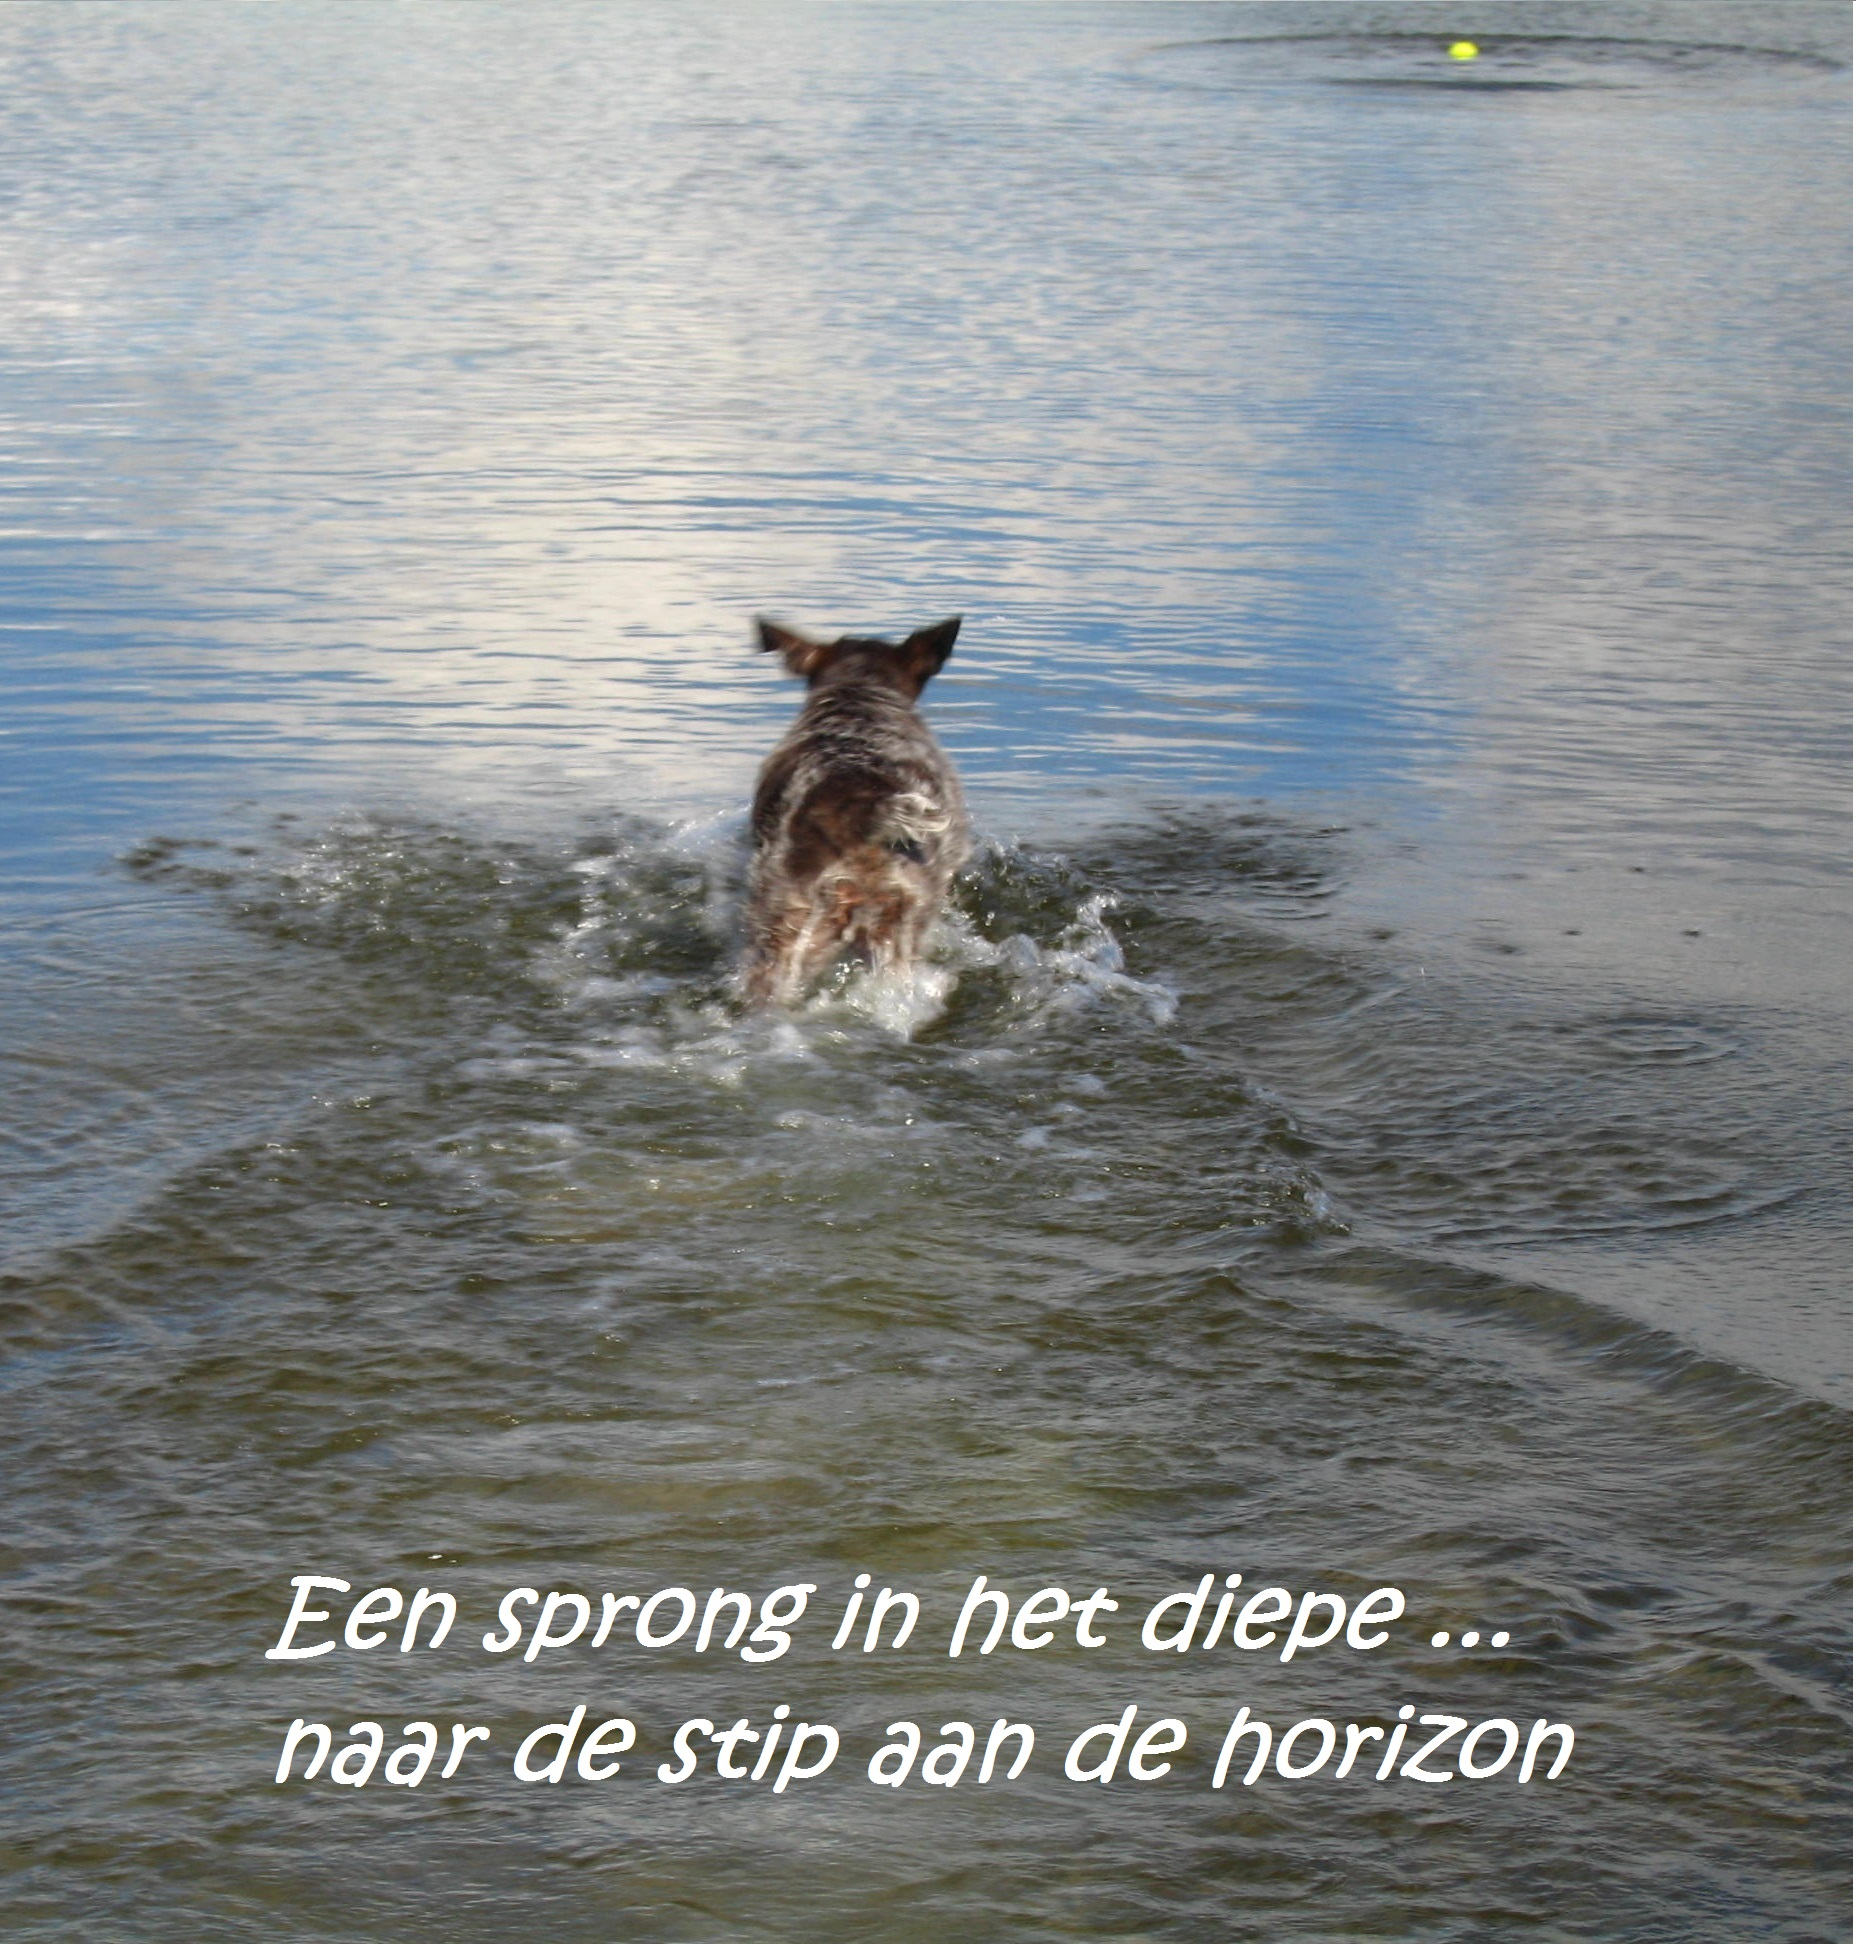 4website - stip aan de horizon